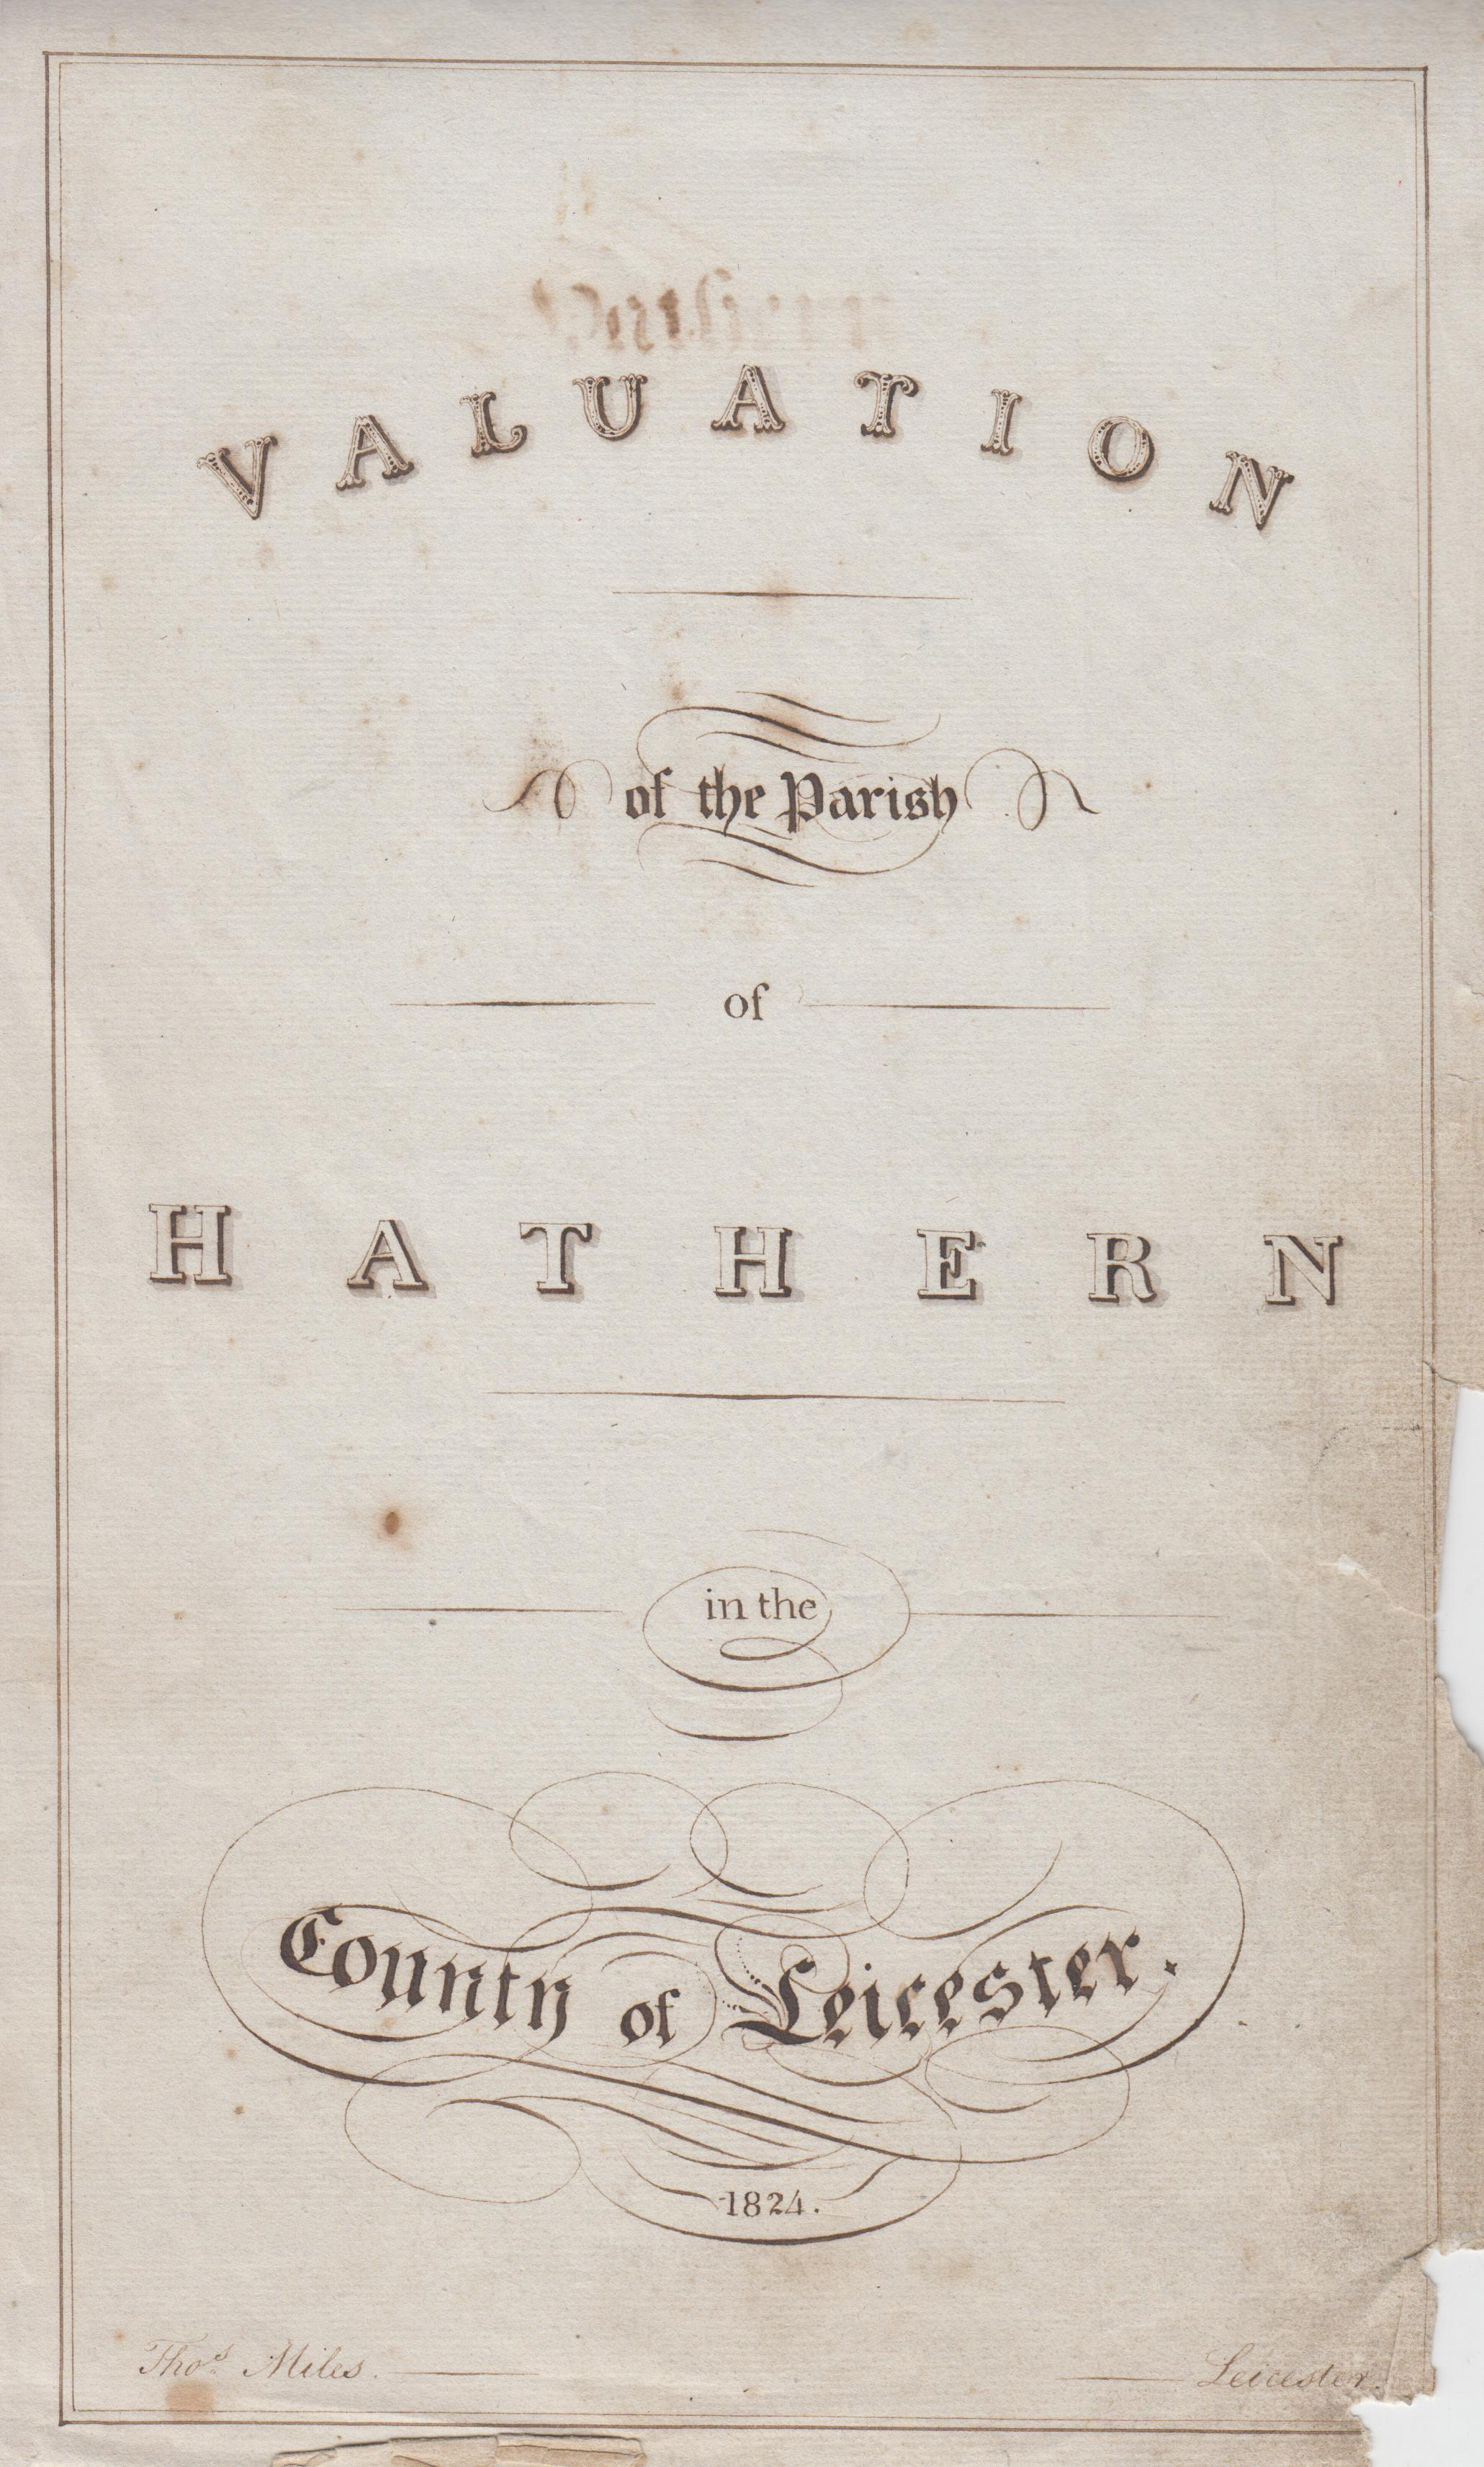 1824 rates front page 001